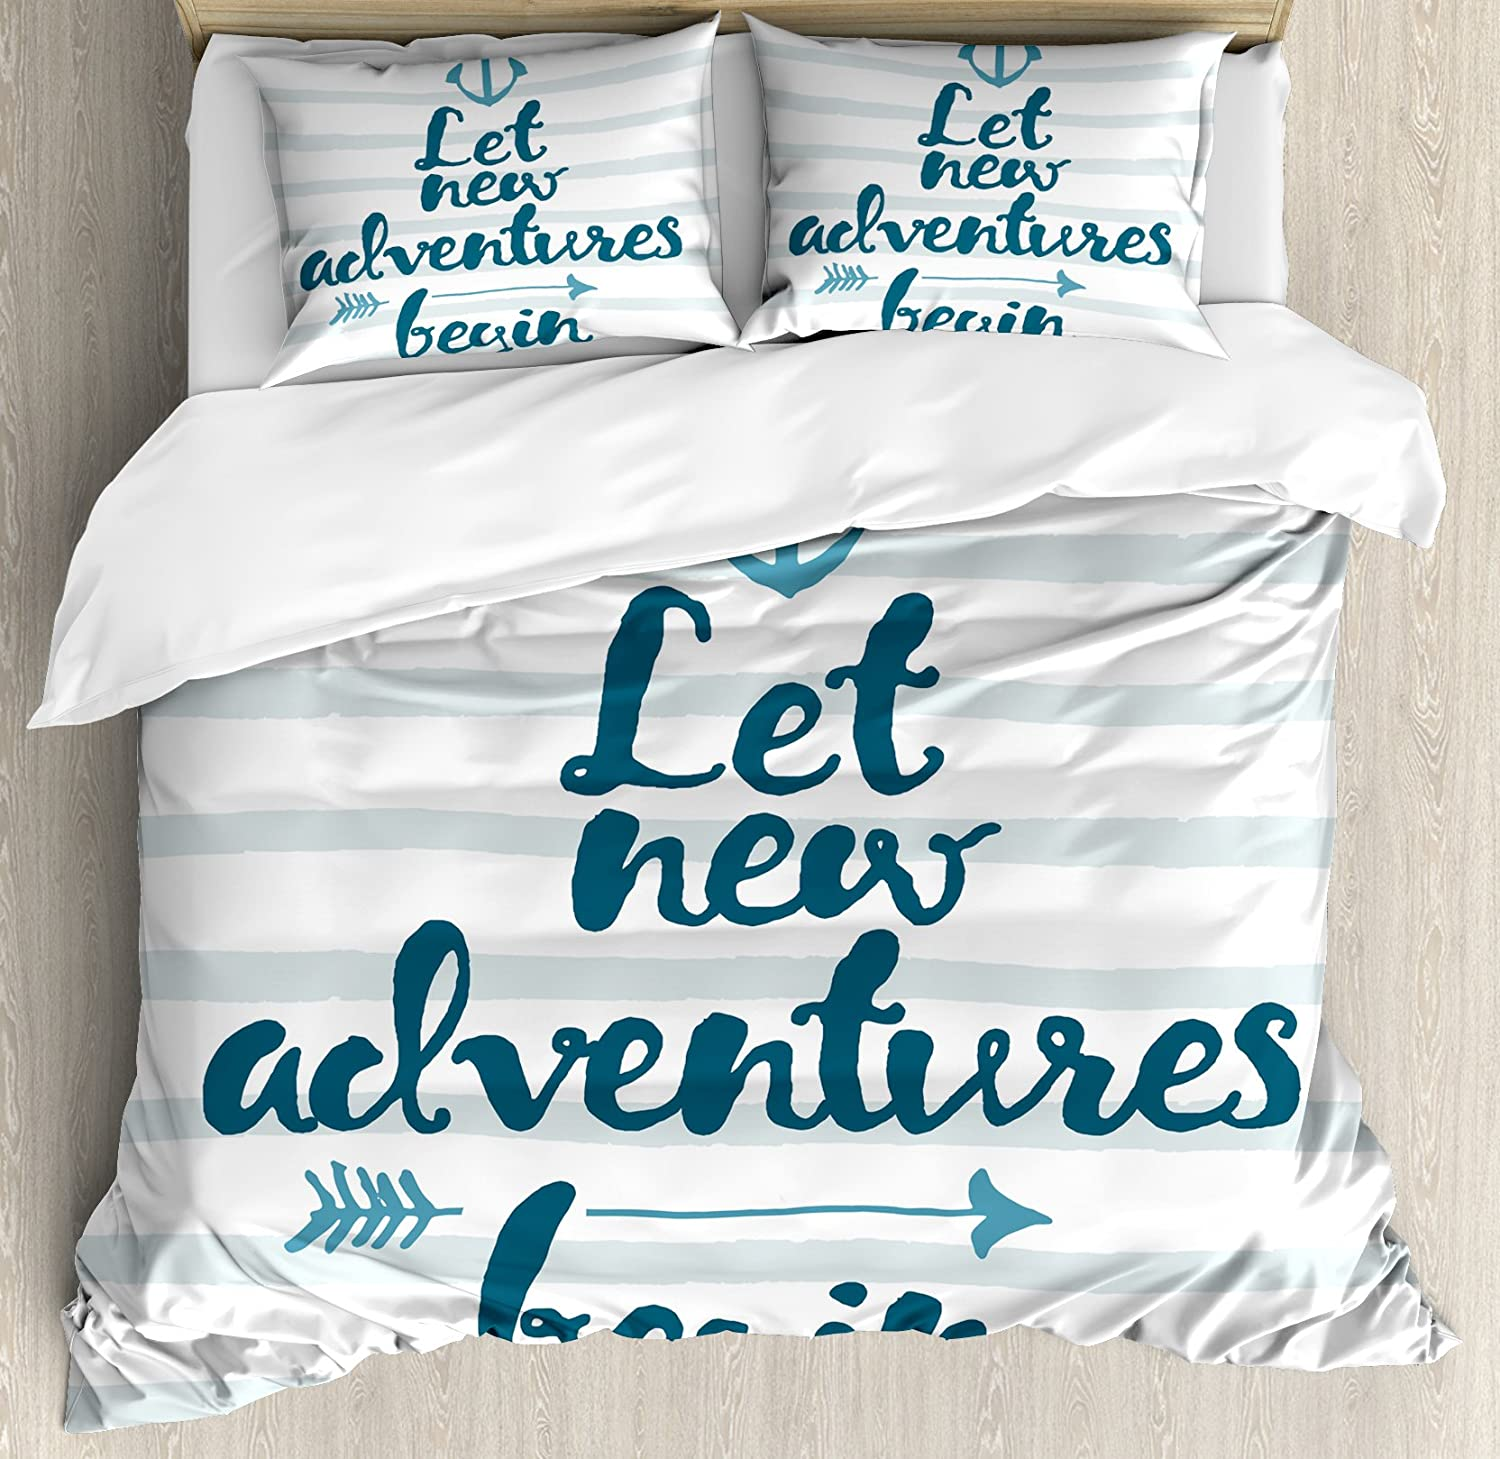 Ambesonne Adventure Duvet Cover Set, Nautical Stripes Anchor and Arrow Motivational Text Sea Travel Cruise, Decorative 3 Piece Bedding Set with 2 Pillow Shams, Queen Size, Petrol Blue White